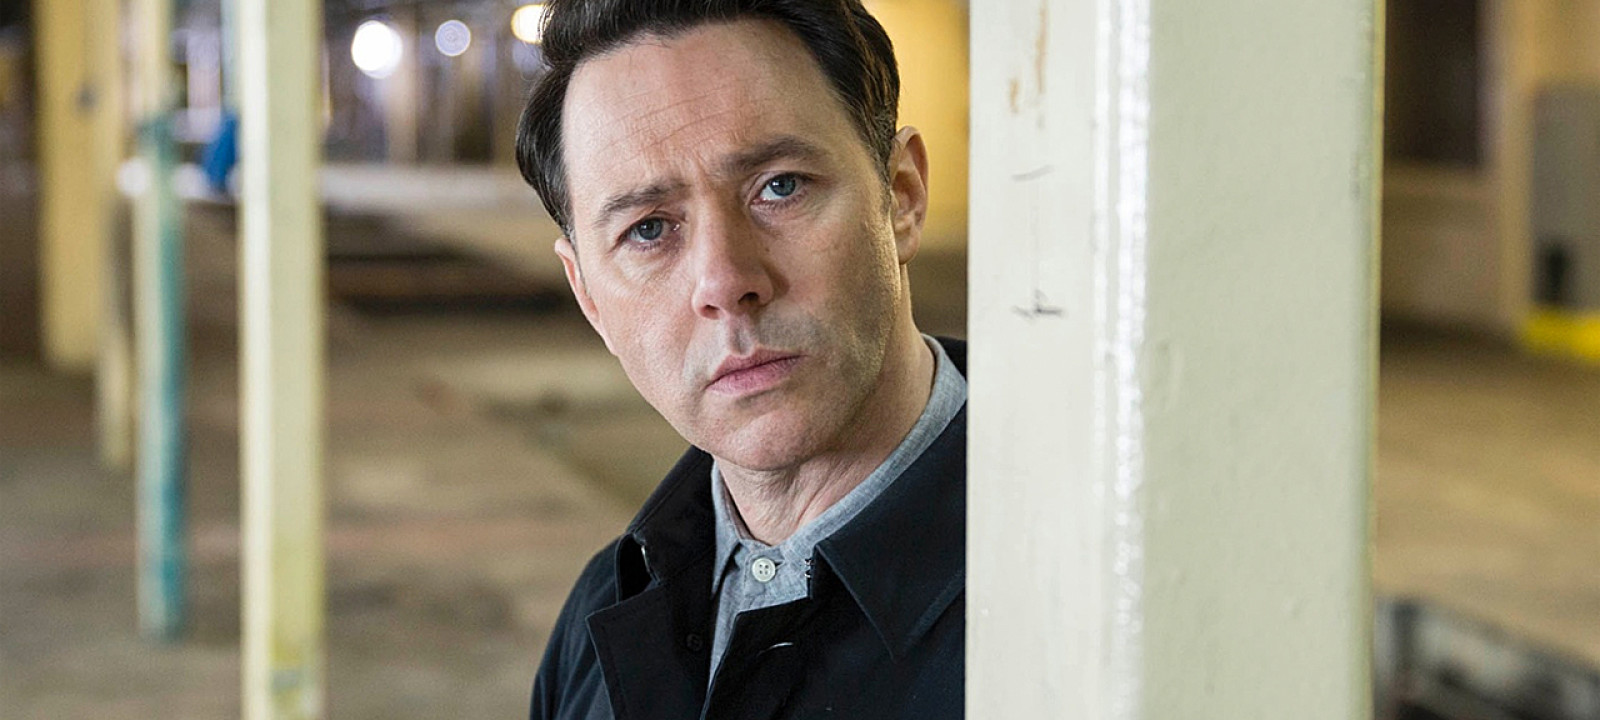 Reece Shearsmith in 'Chasing Shadows' (Pic: ITV)